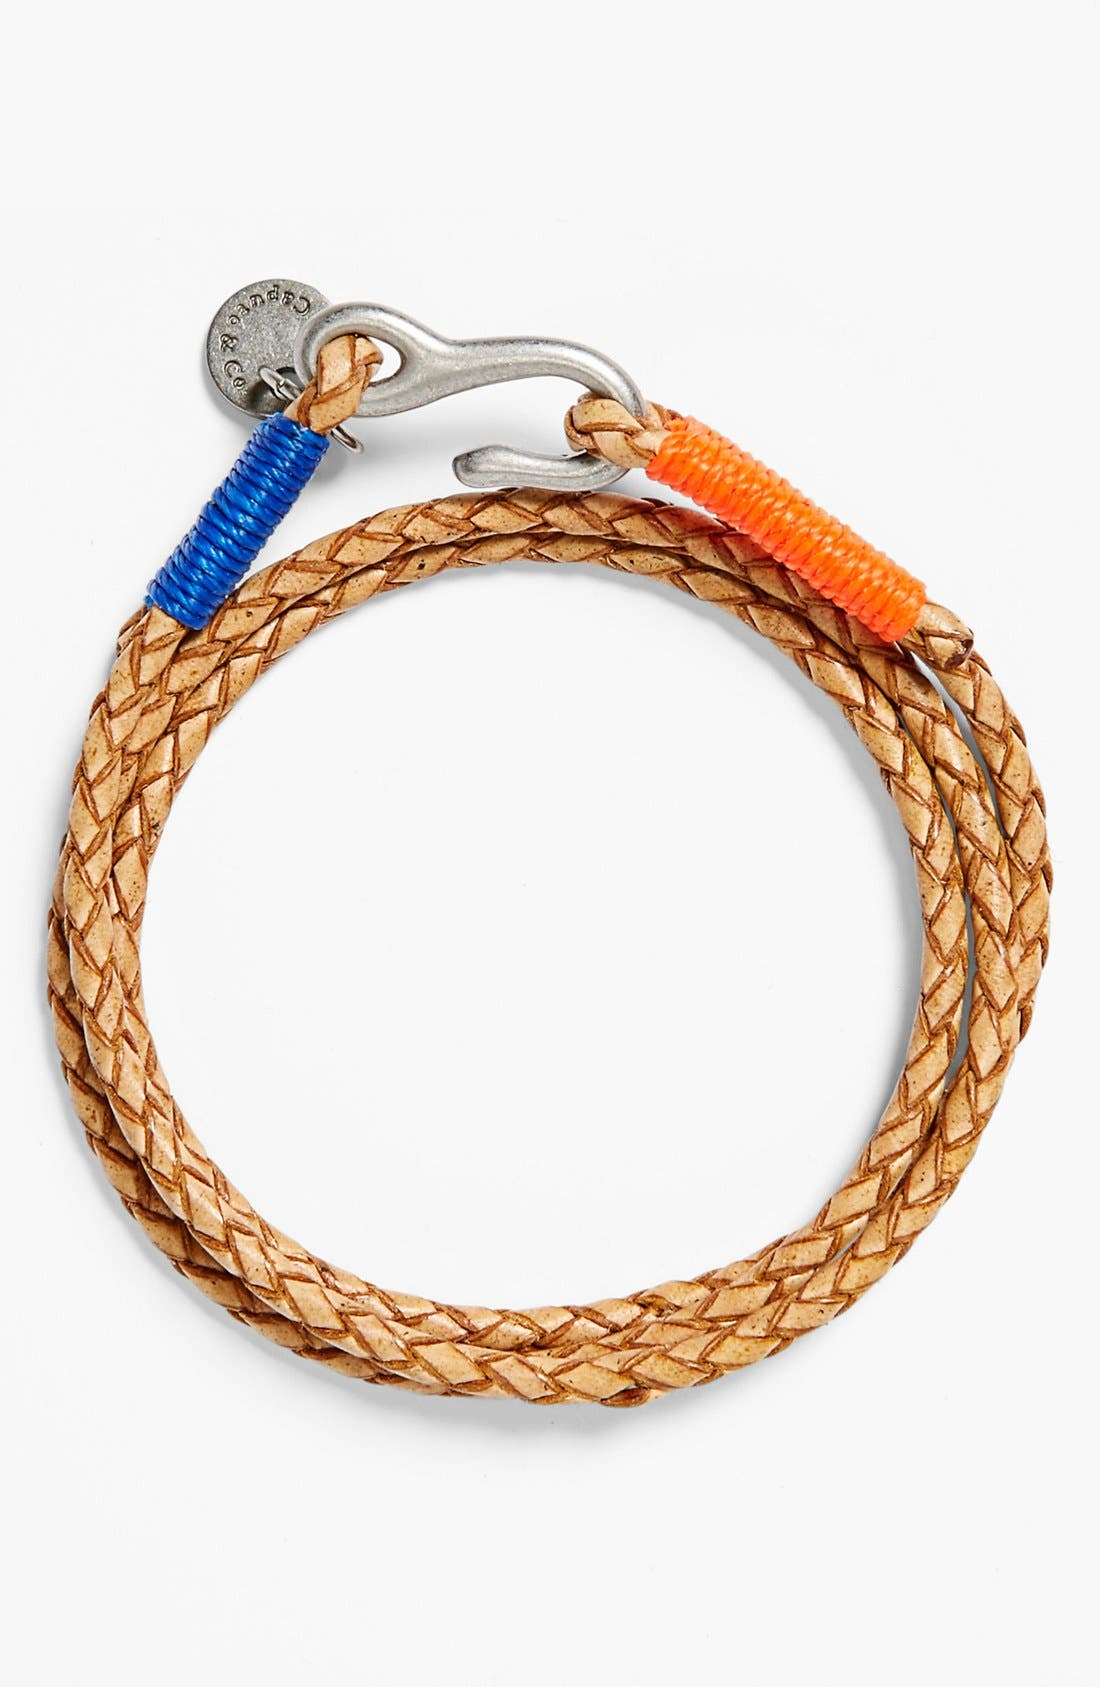 Main Image - CAPUTO & CO Washed Braided Leather Bracelet